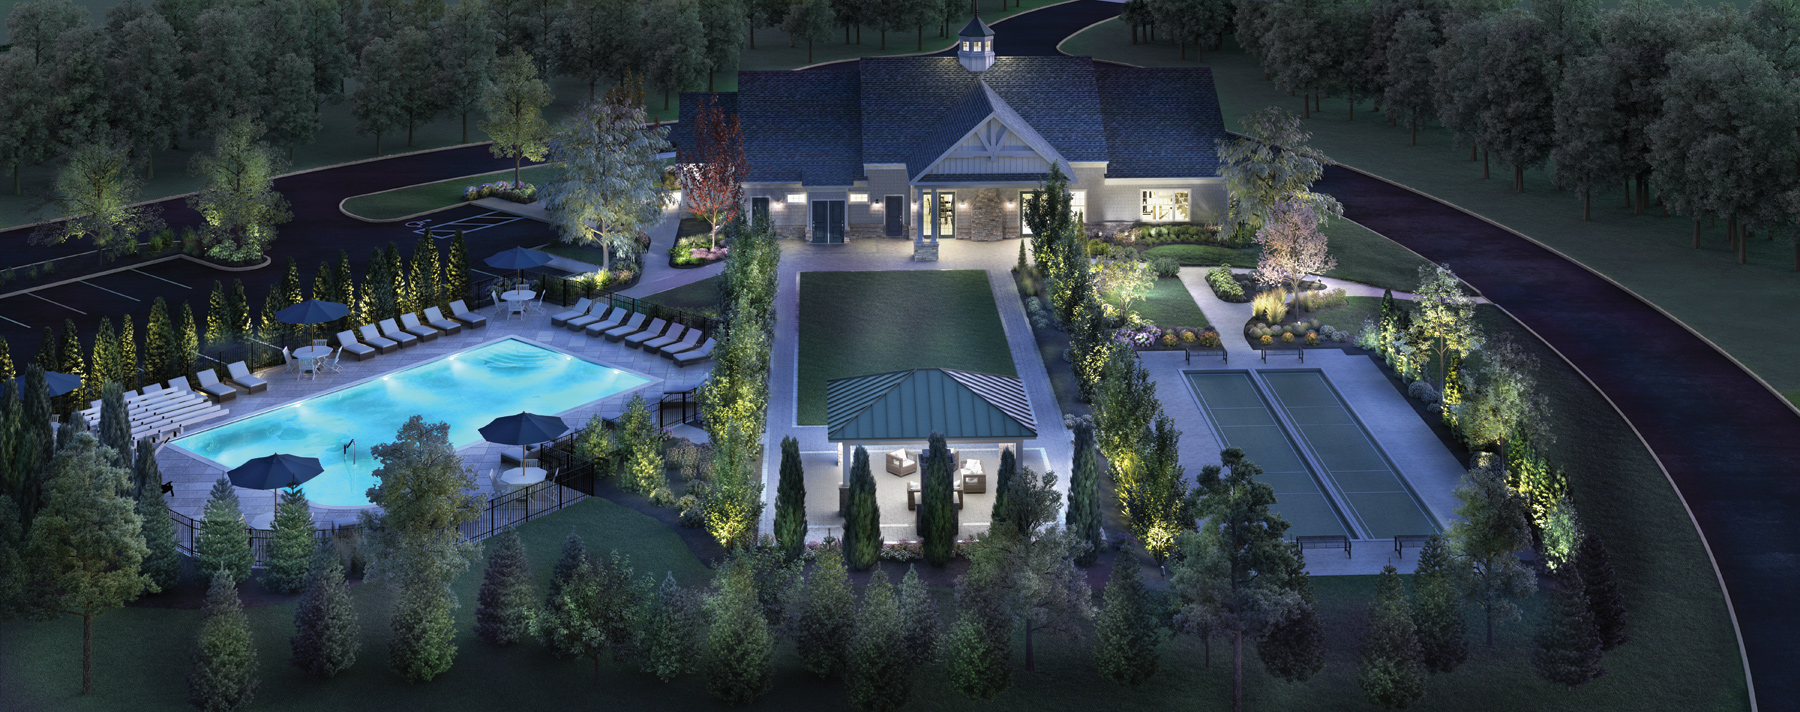 Amenities with swimming pool, bocce courts, and formal lawn with pavilion